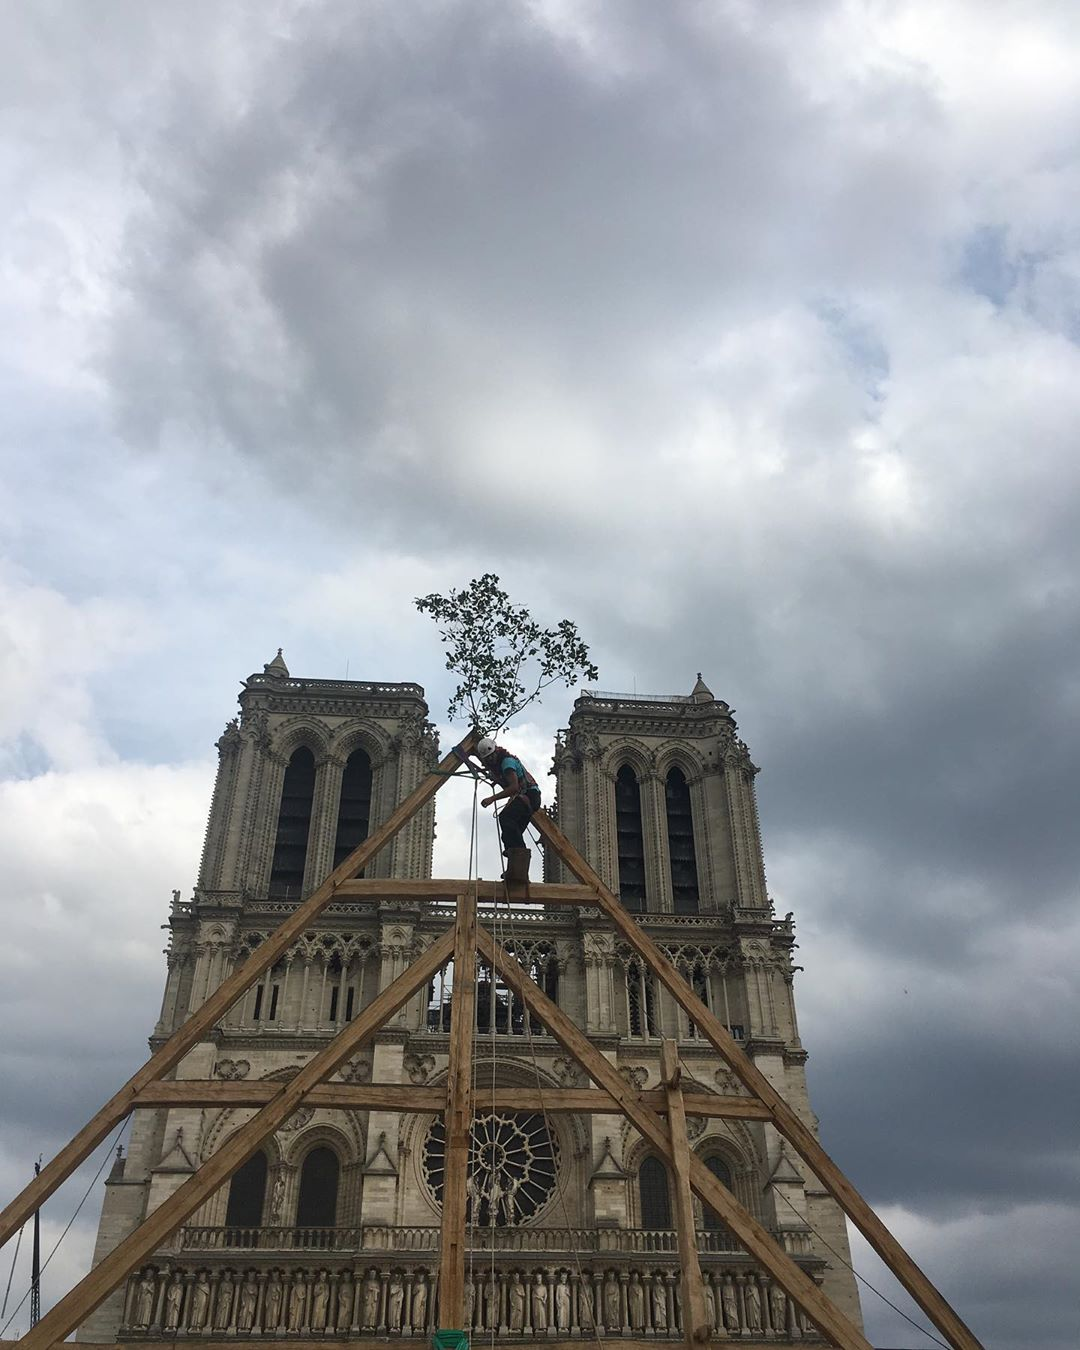 Carpenters Without Borders recreate Notre Dame in Paris